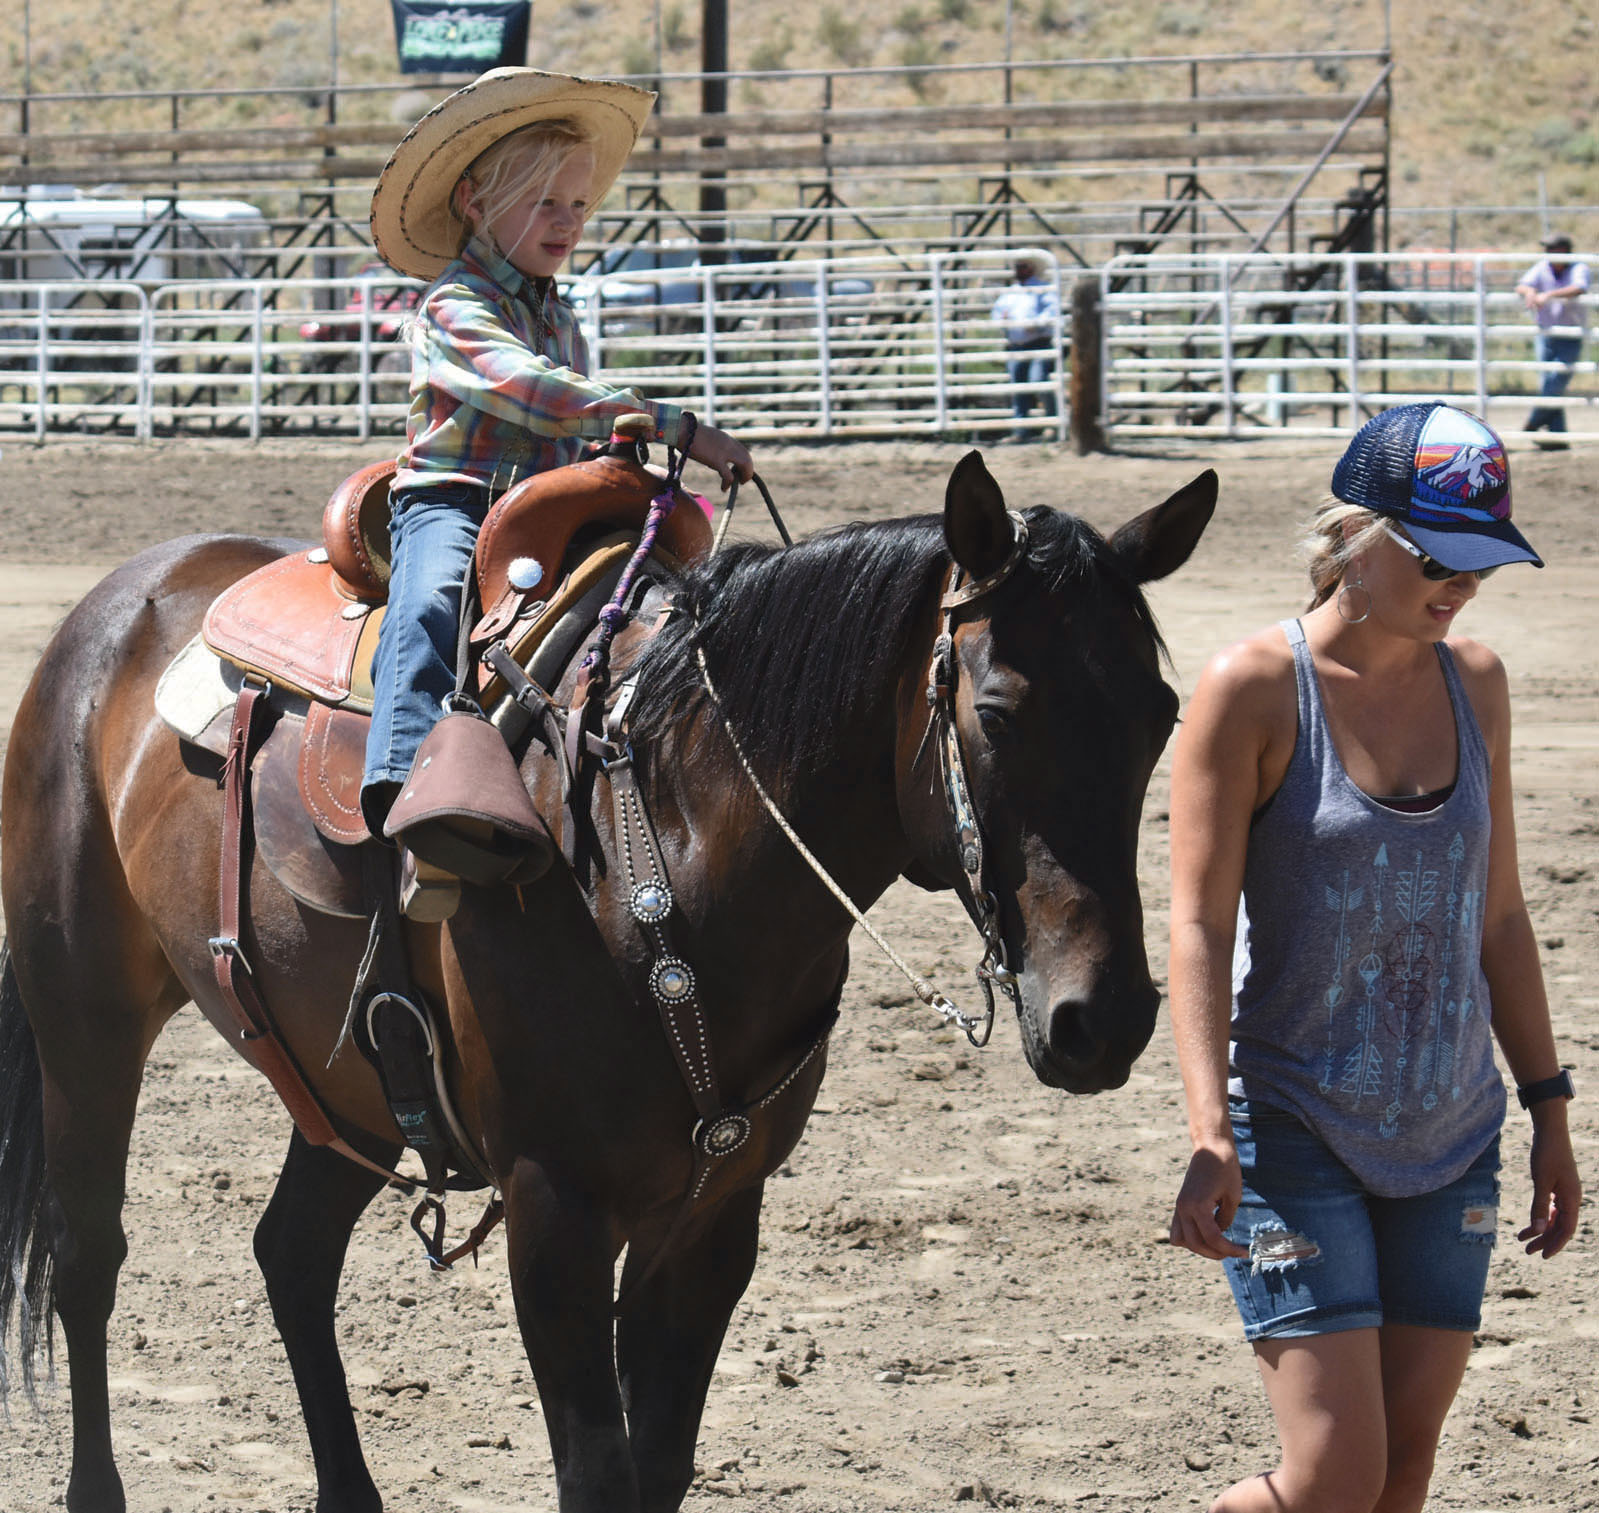 After pulling a ribbon from the tail of a goat, this cowgirl hopped back on her horse before being guided out of the arena.